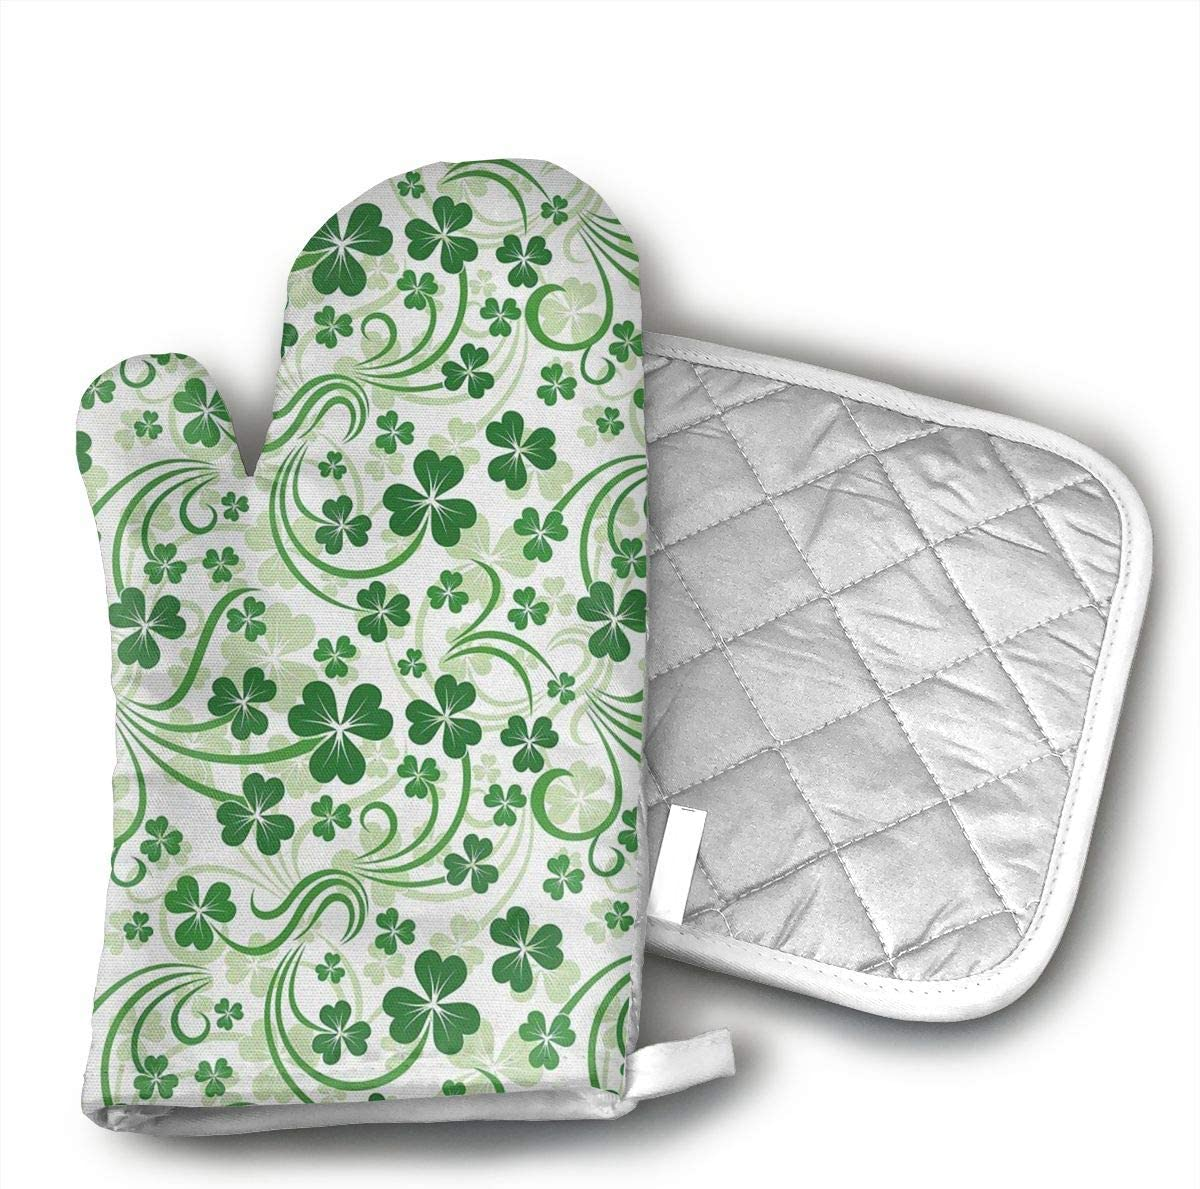 EROJfj Lucky Shamrock Irish Design Oven Mitts and Potholders BBQ Gloves-Oven Mitts and Pot Holders Non-Slip Cooking Gloves for Cooking Baking Grilling